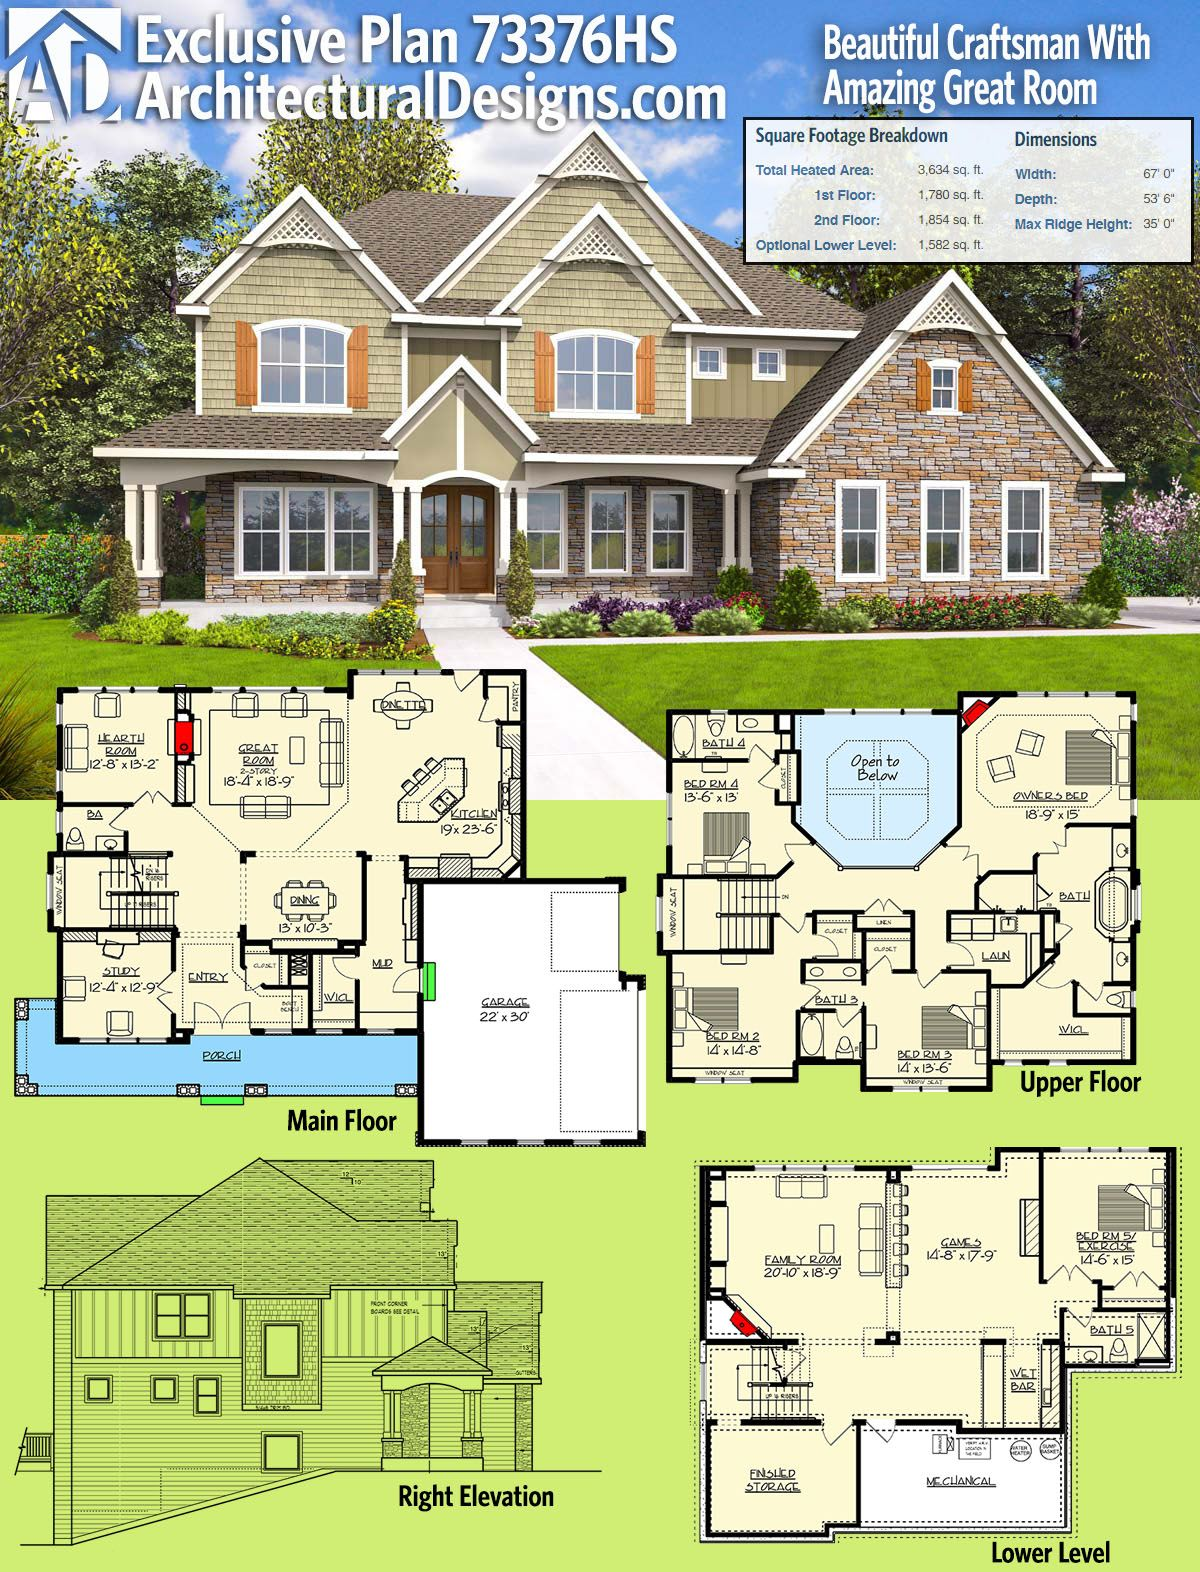 House Plan 73376HS Beautiful Craftsman With Amazing